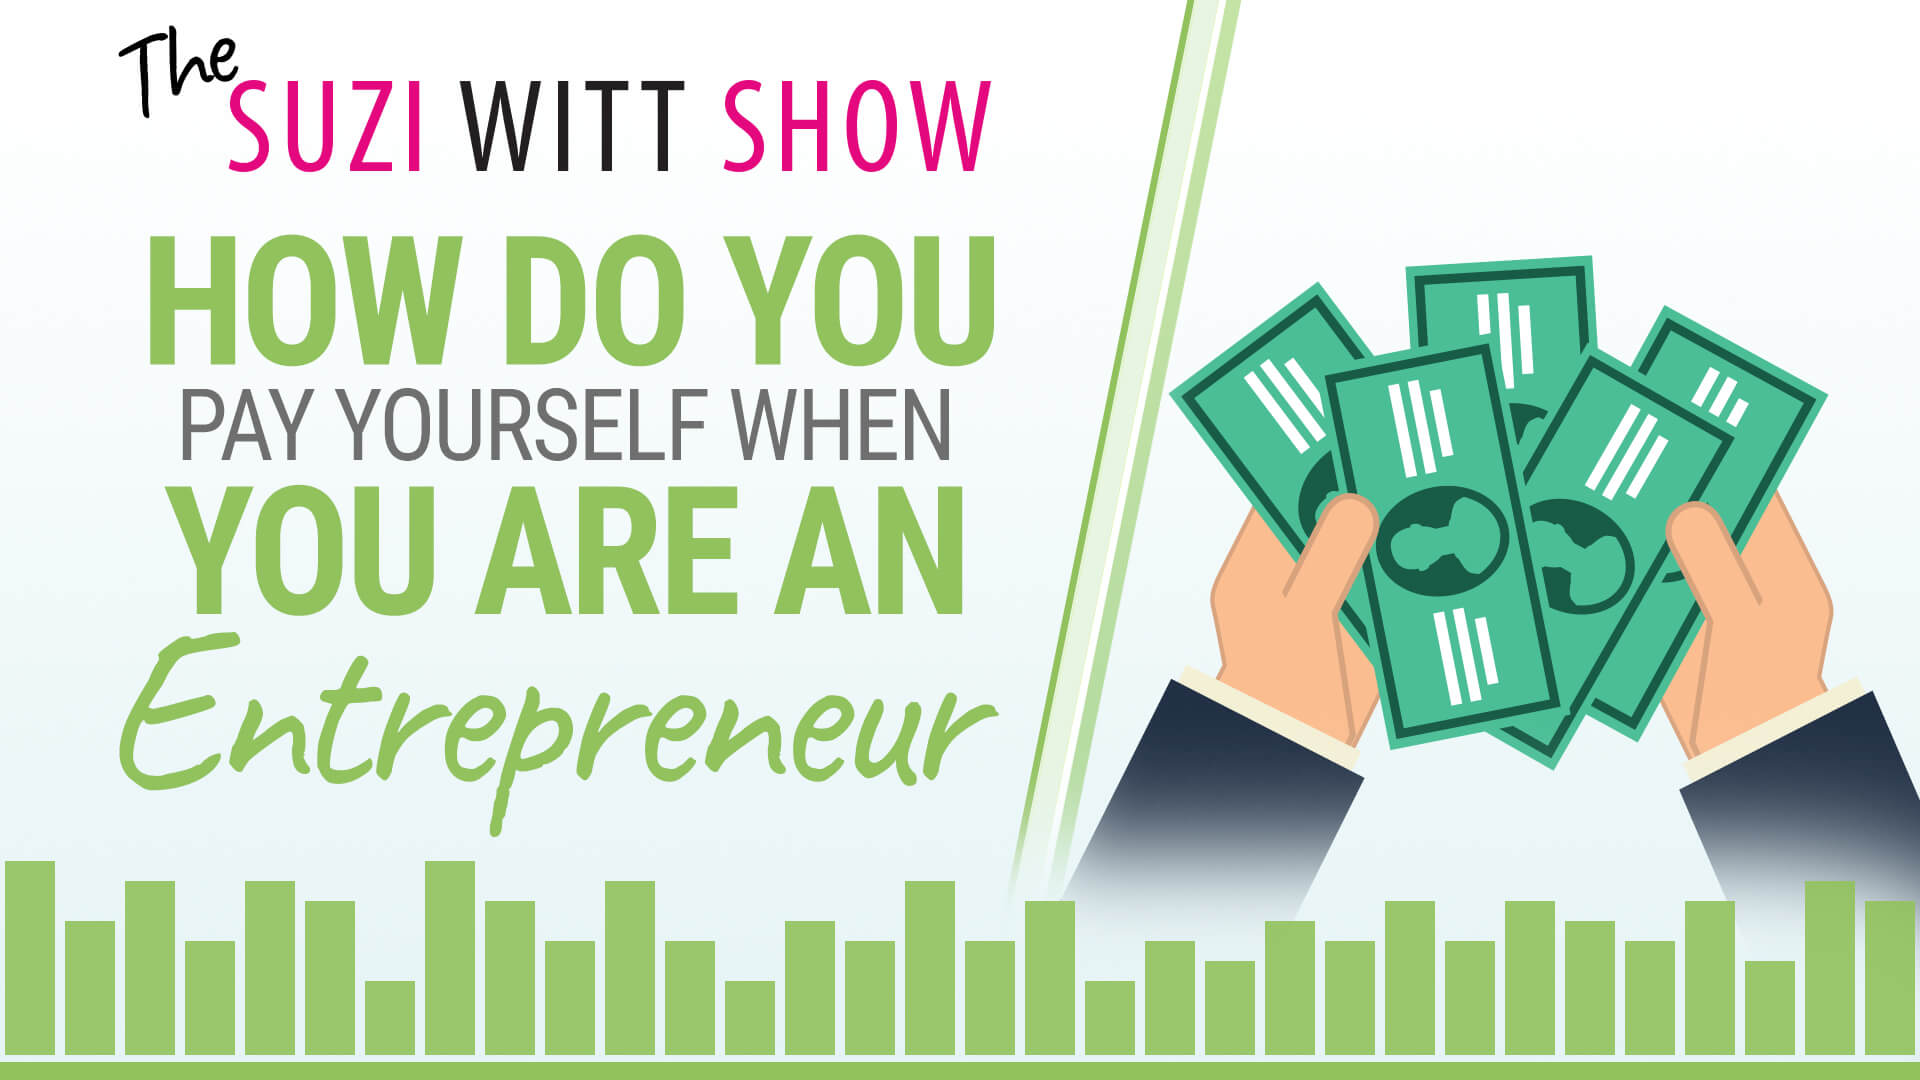 How do you pay yourself when you are an entrepreneur?